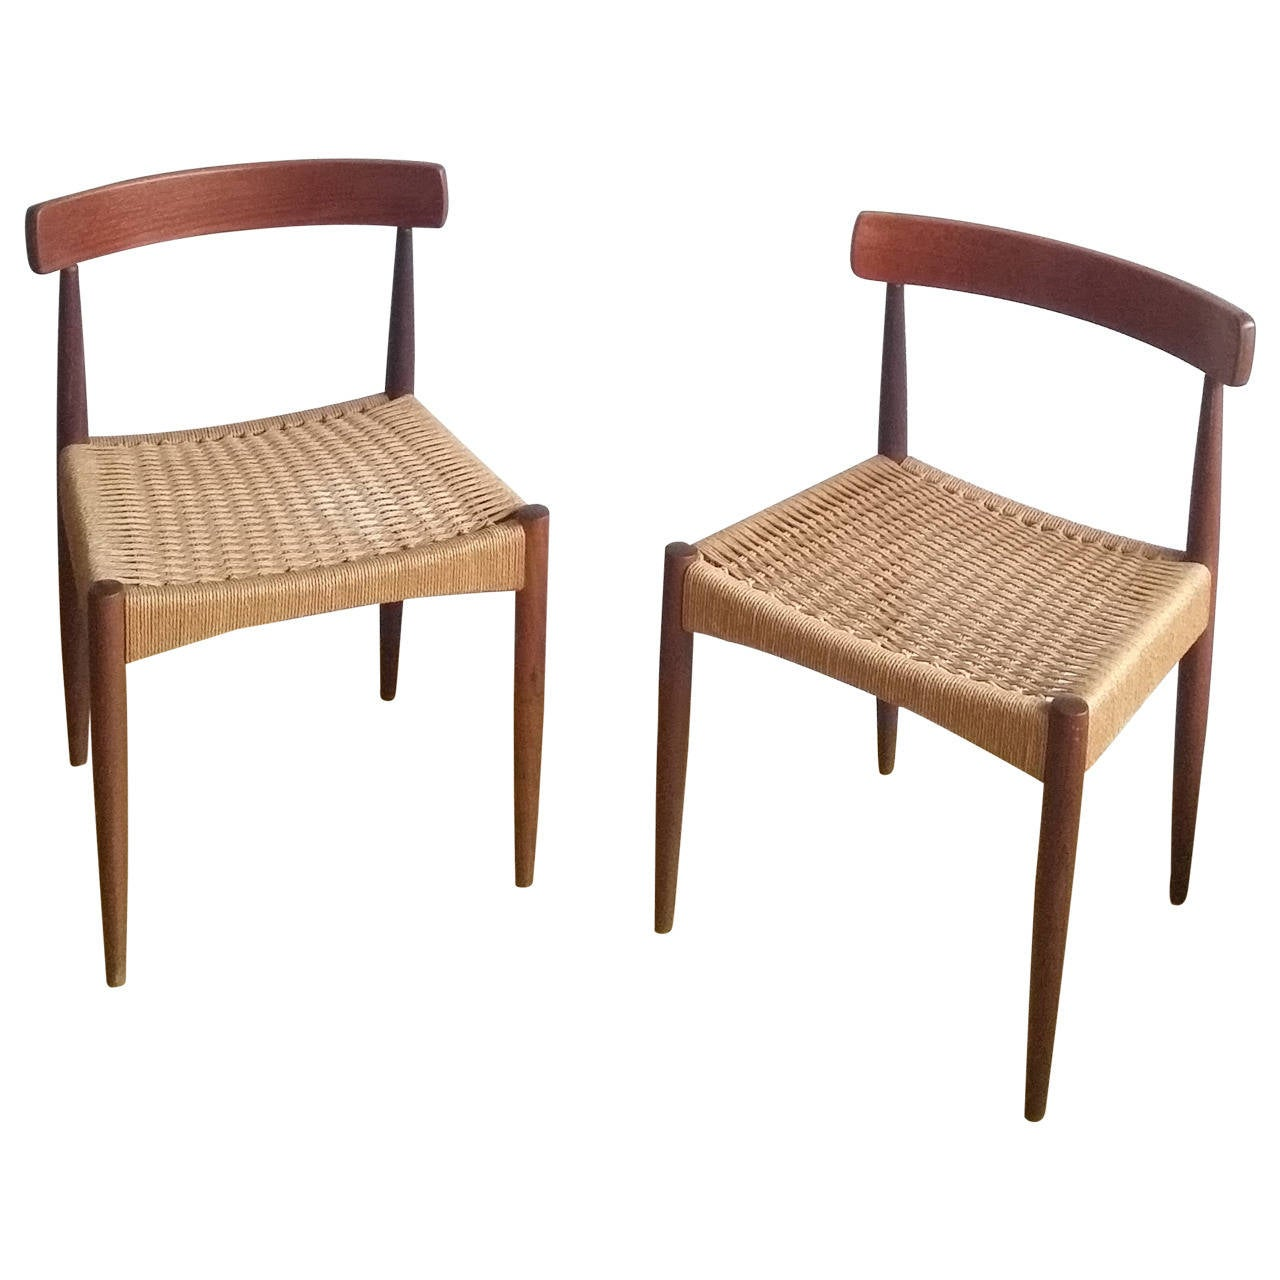 Ordinaire Pair Of Signed Danish MK Chairs, Denmark, 1960s For Sale